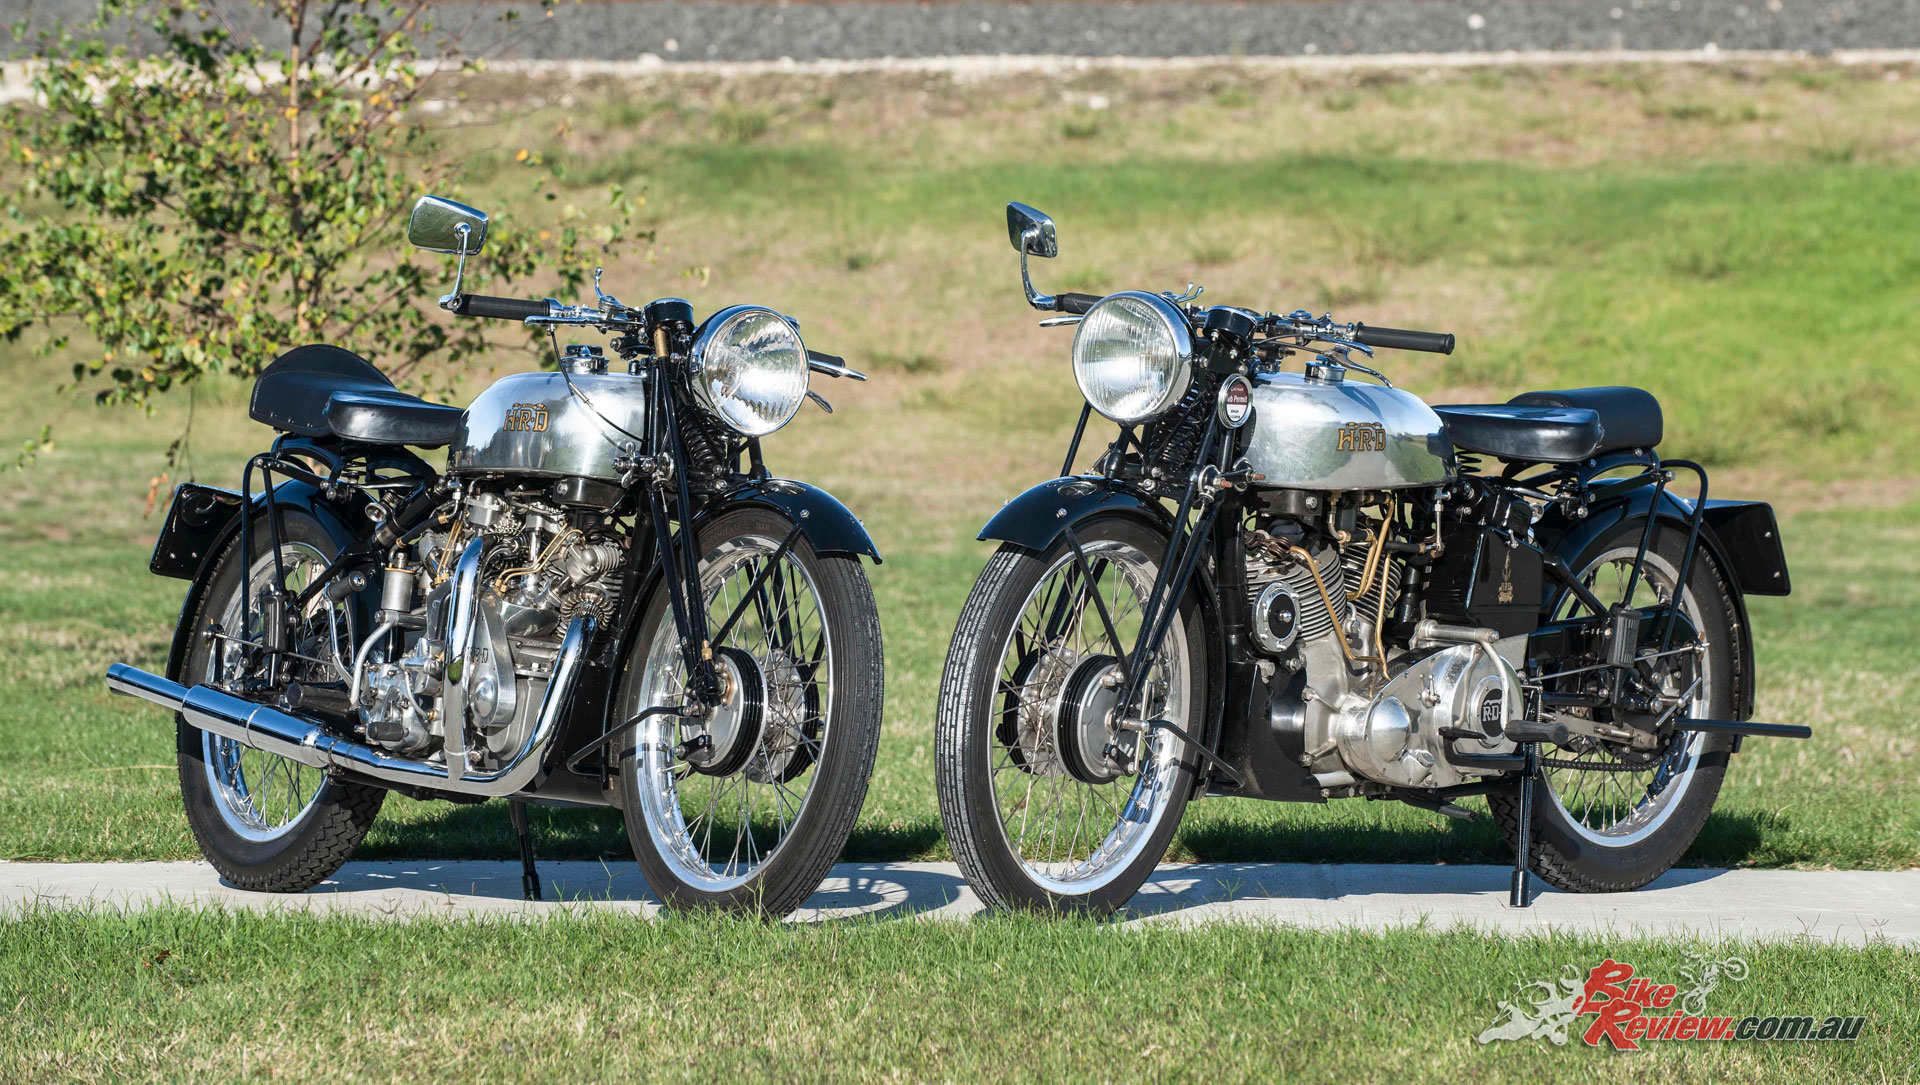 The 2018 Broadford Bike Bonanza will theme the Vincent HRD for its 90th anniversary